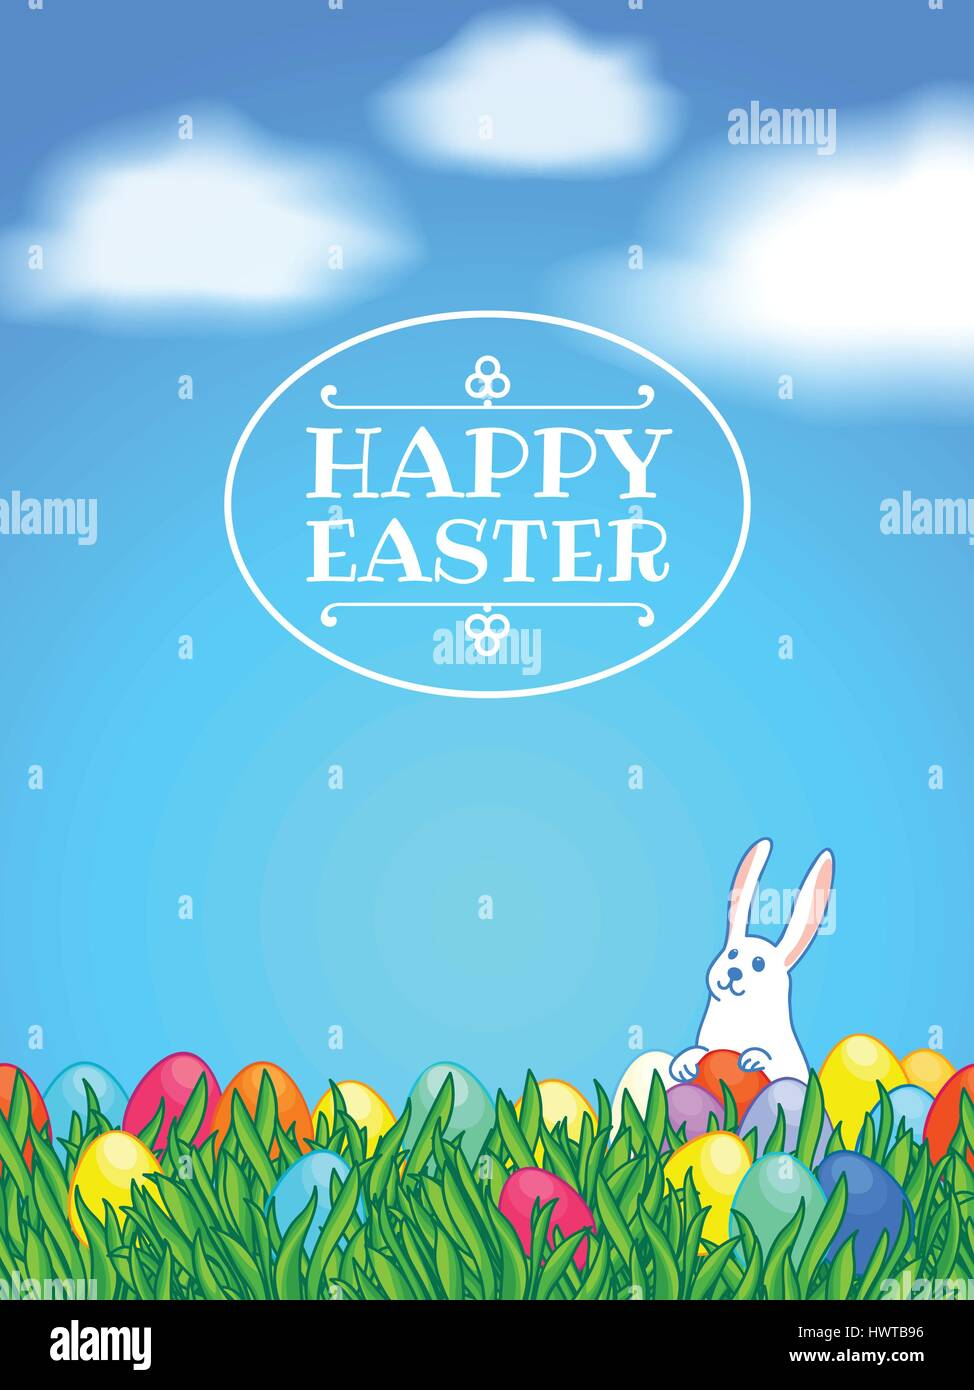 Happy easter greeting or invitation card vertical template white happy easter greeting or invitation card vertical template white easter bunny with painted eggs and green grass background with clouds and blue sky m4hsunfo